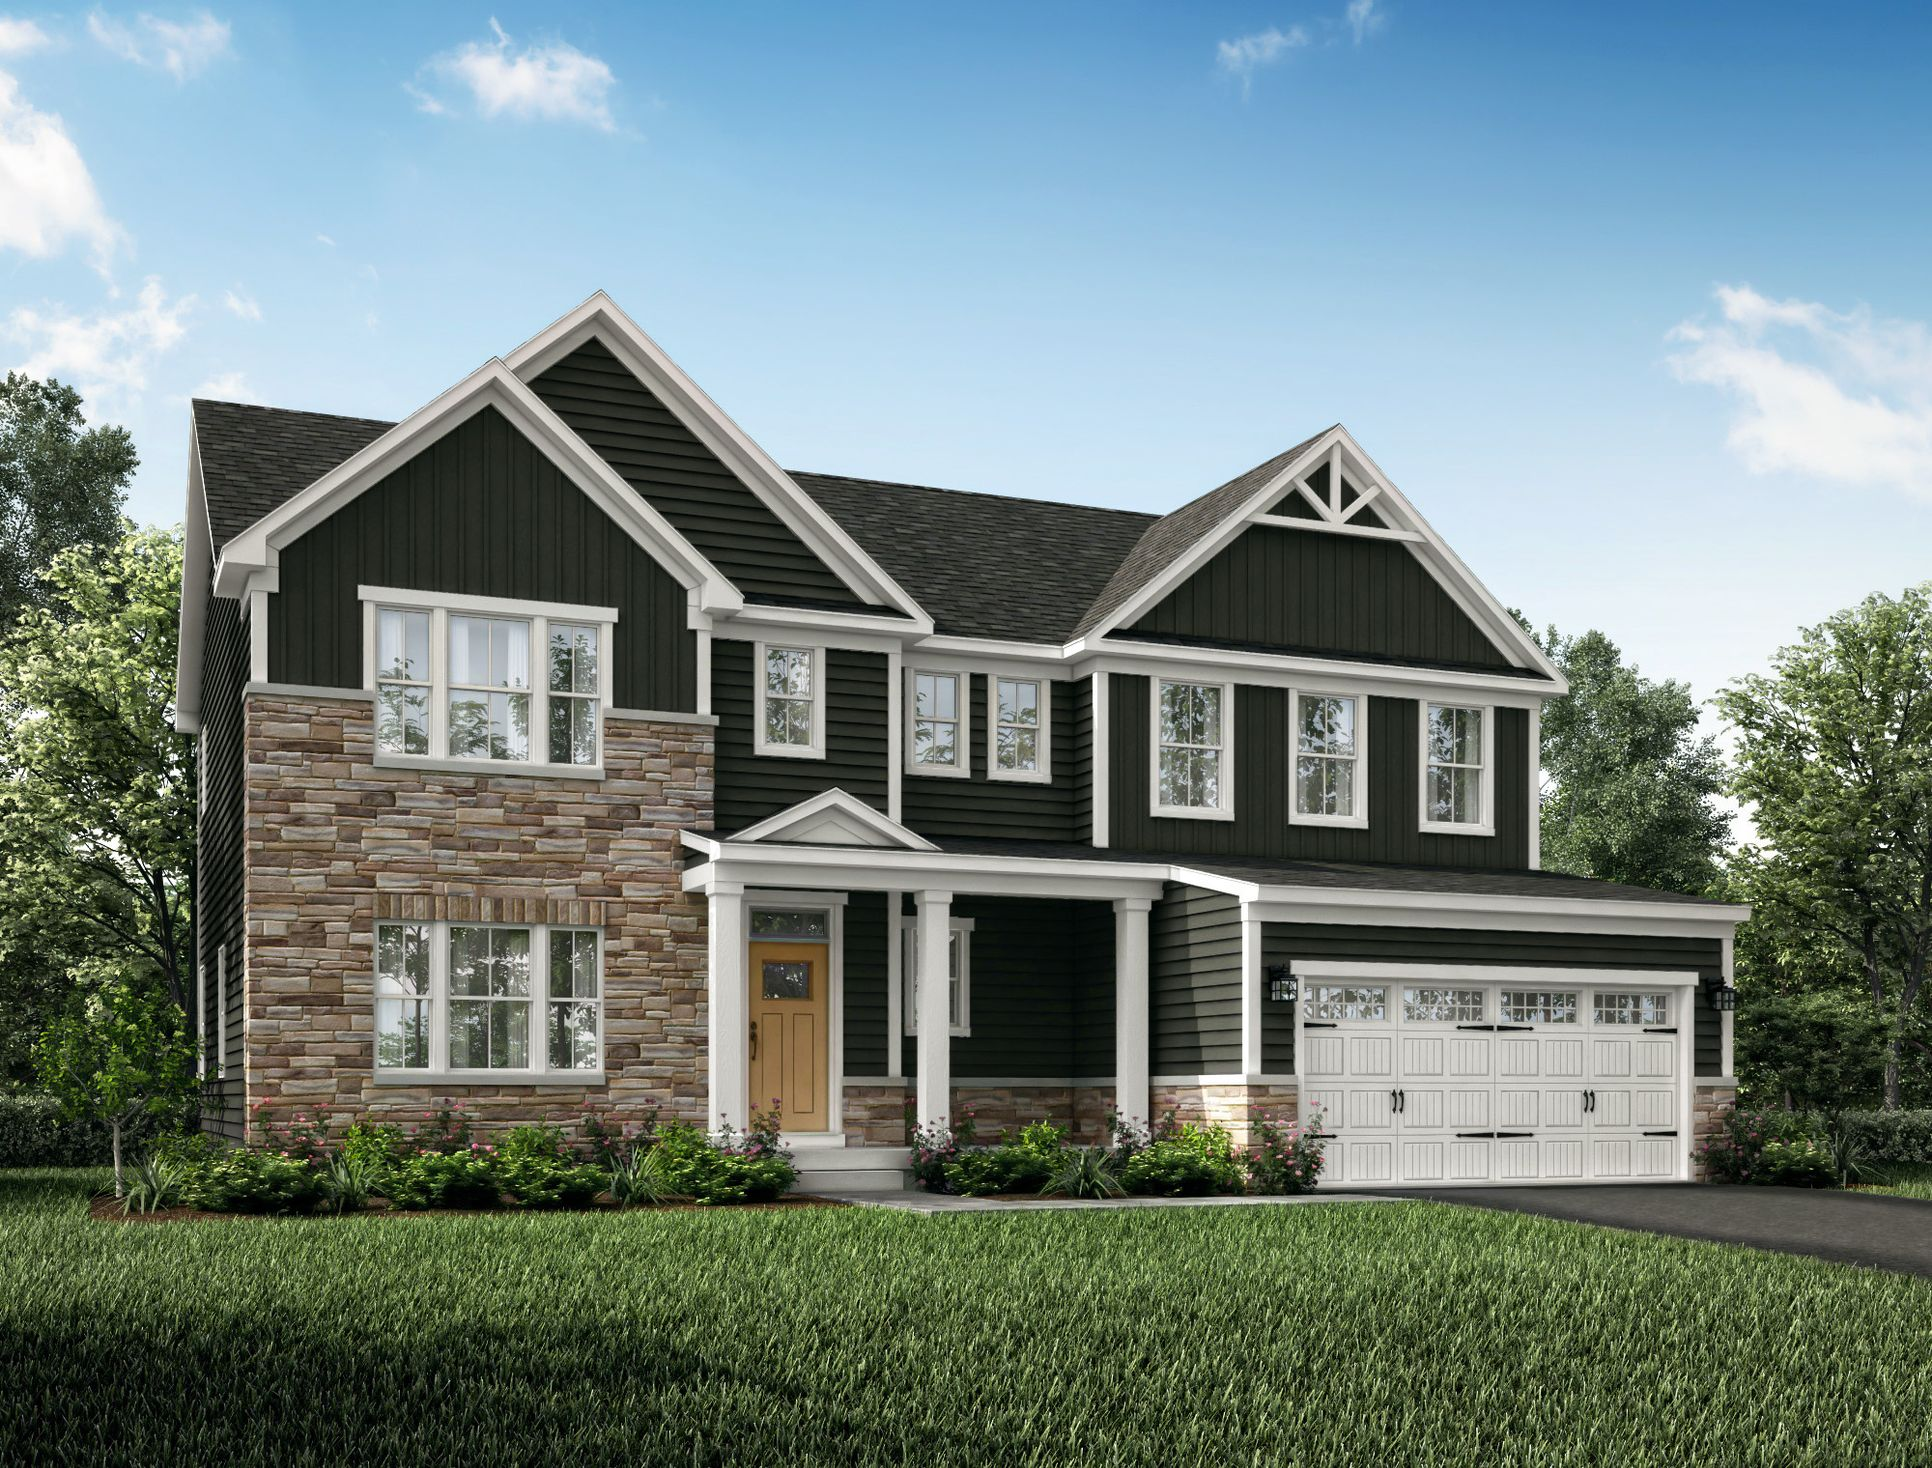 Imagine your home here:11 families have decided to buy in Hampton Pointe in 2021 alone!Schedule your visitnow and find out more about homes such as the Roanoke above!